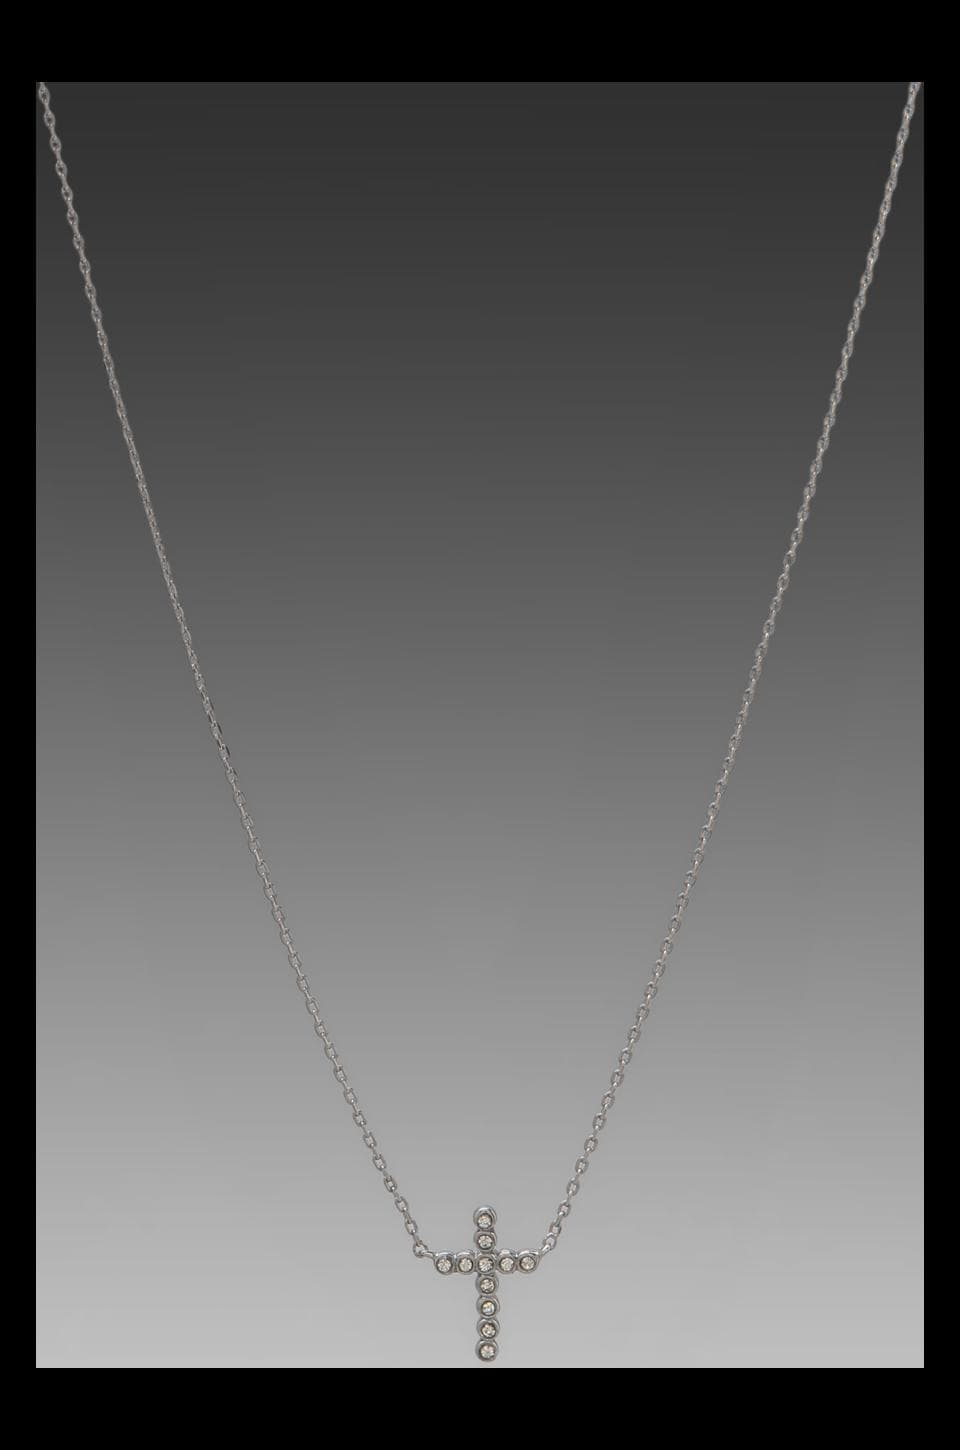 Juicy Couture Cross Necklace in Silver